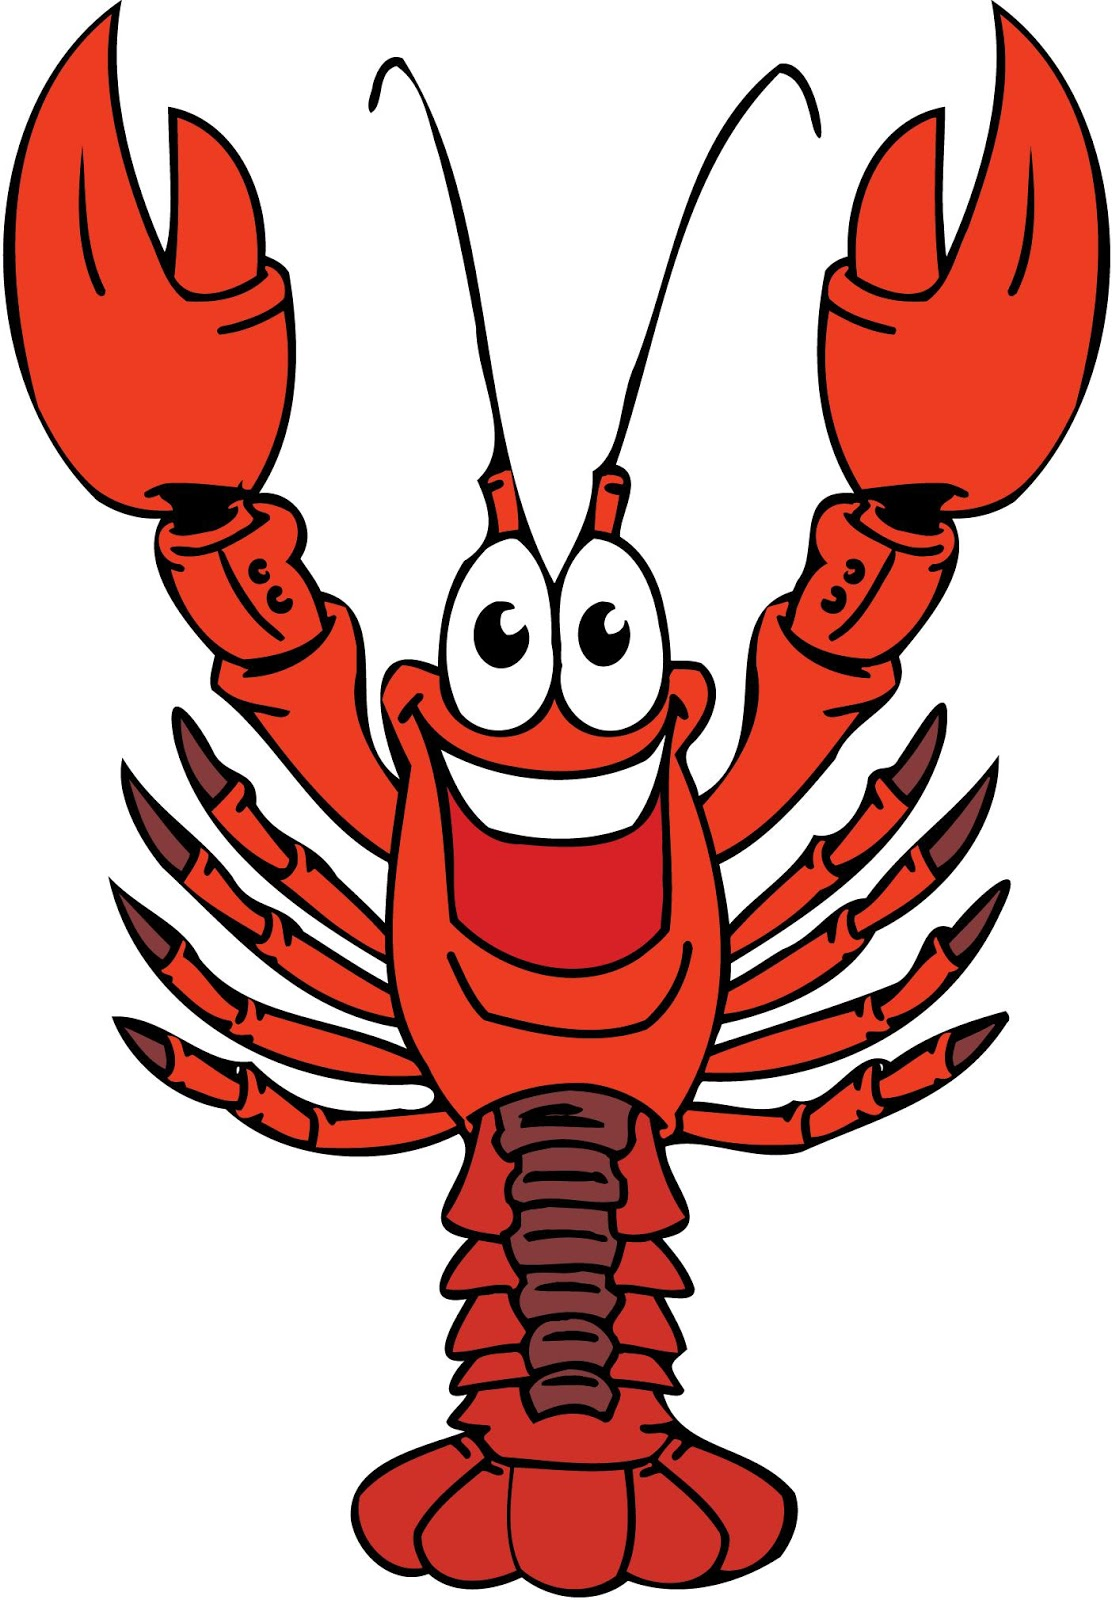 Crawfish Boil Clipart.